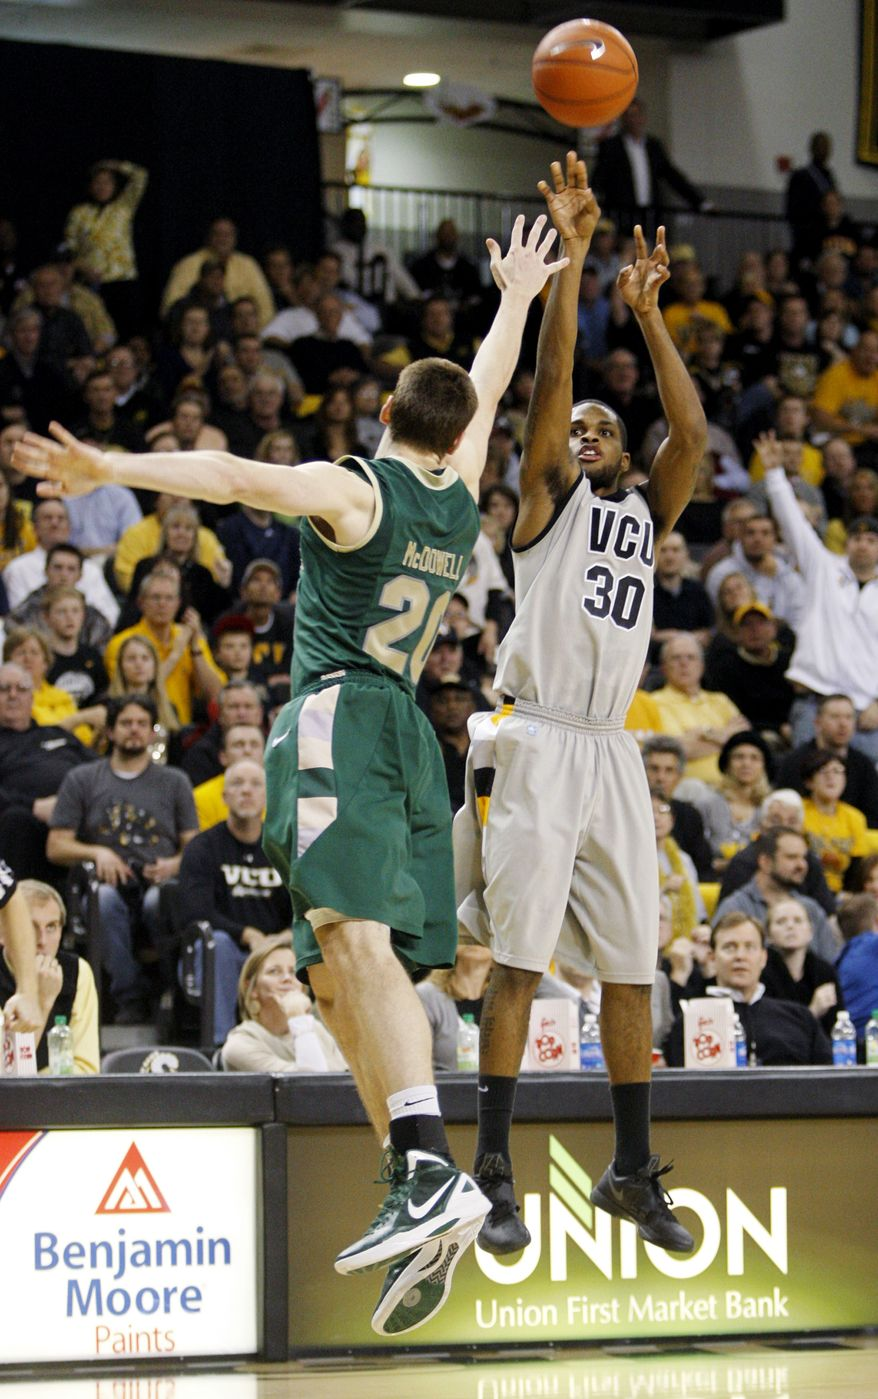 Virginia Commonwealth's Troy Daniels shoots over William & Mary's Quinn McDowell during the second half, Thursday, Jan. 19, 2012, in Richmond, Va. Daniels had seven points as Virginia Commonwealth won 69-68 in overtime. (AP Photo/Richmond Times-Dispatch, Eva Russo)